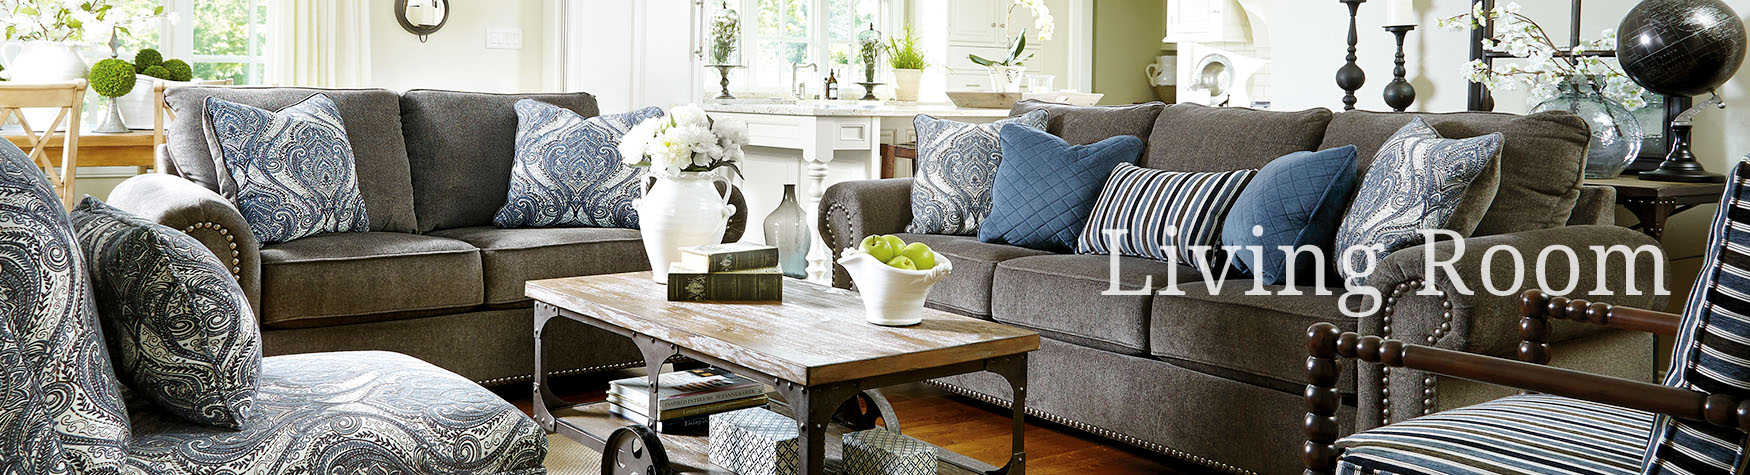 Living room furniture on sale near ft bragg in fayetteville nc at lee furniture